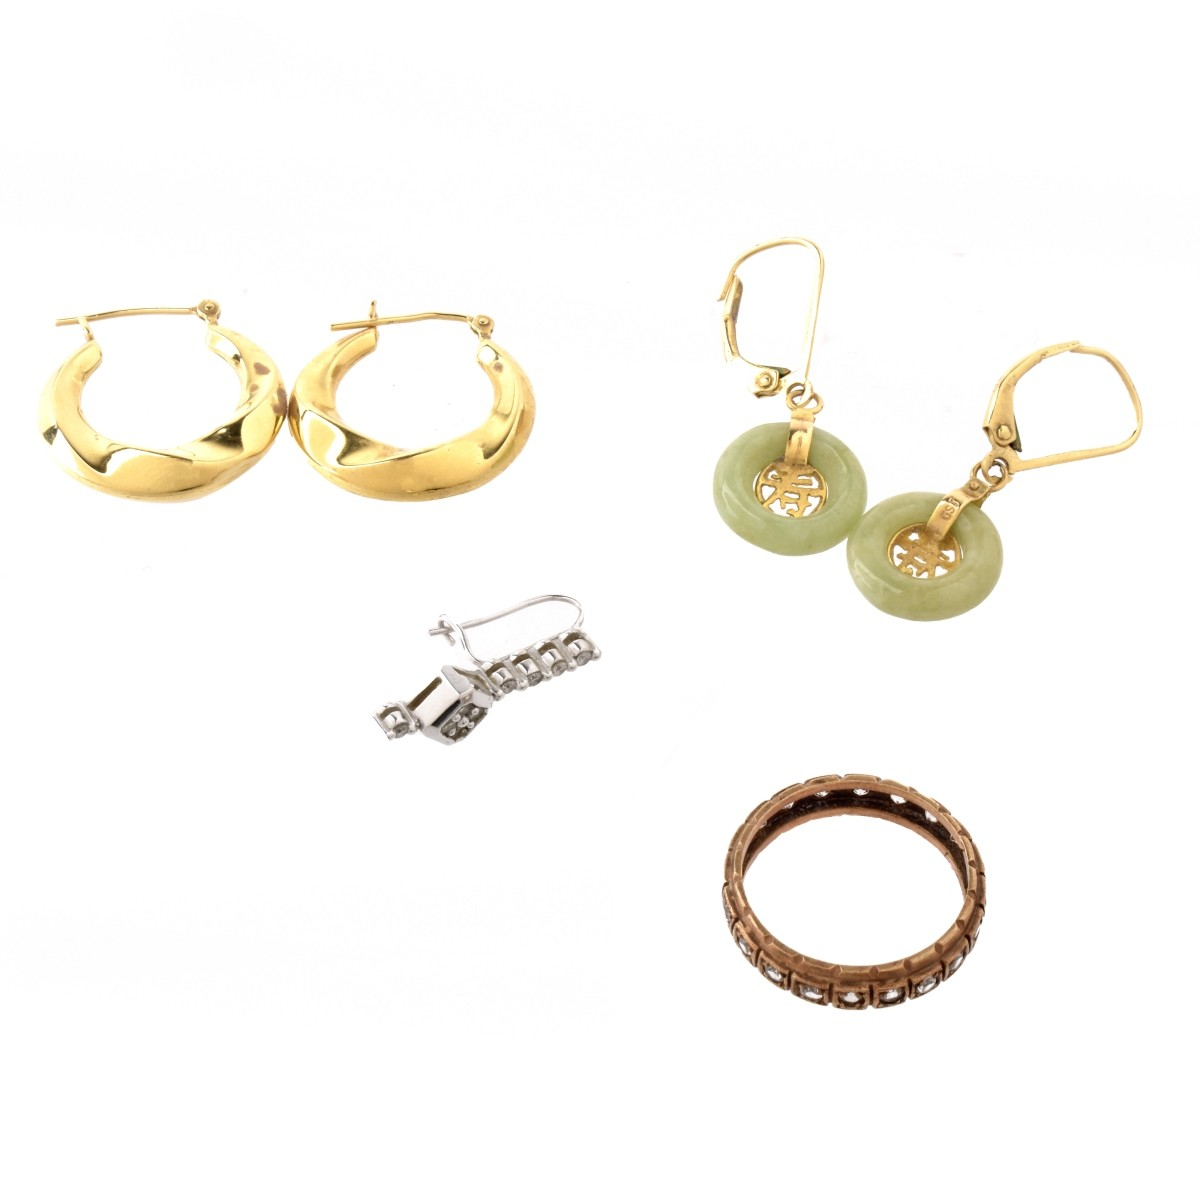 Misc. Gold Jewelry Lot